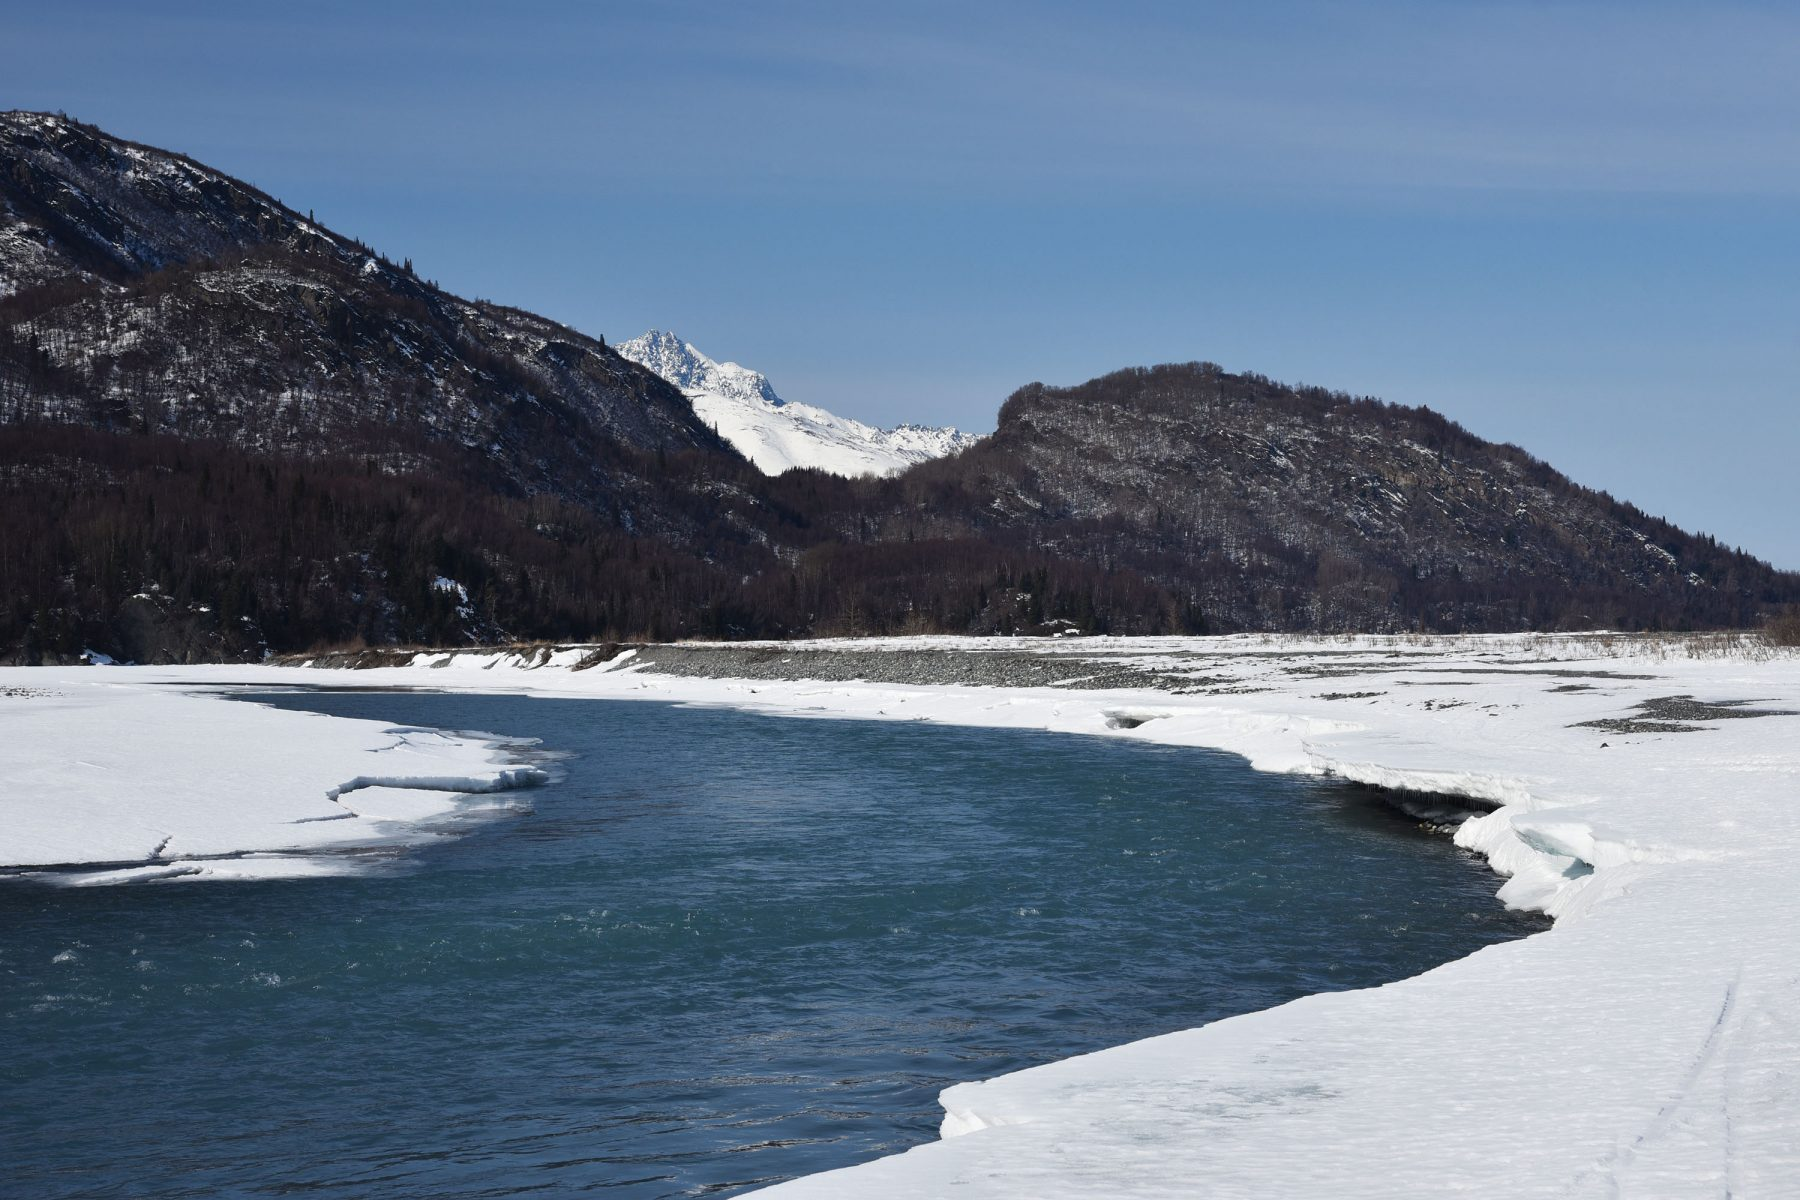 The Knik River